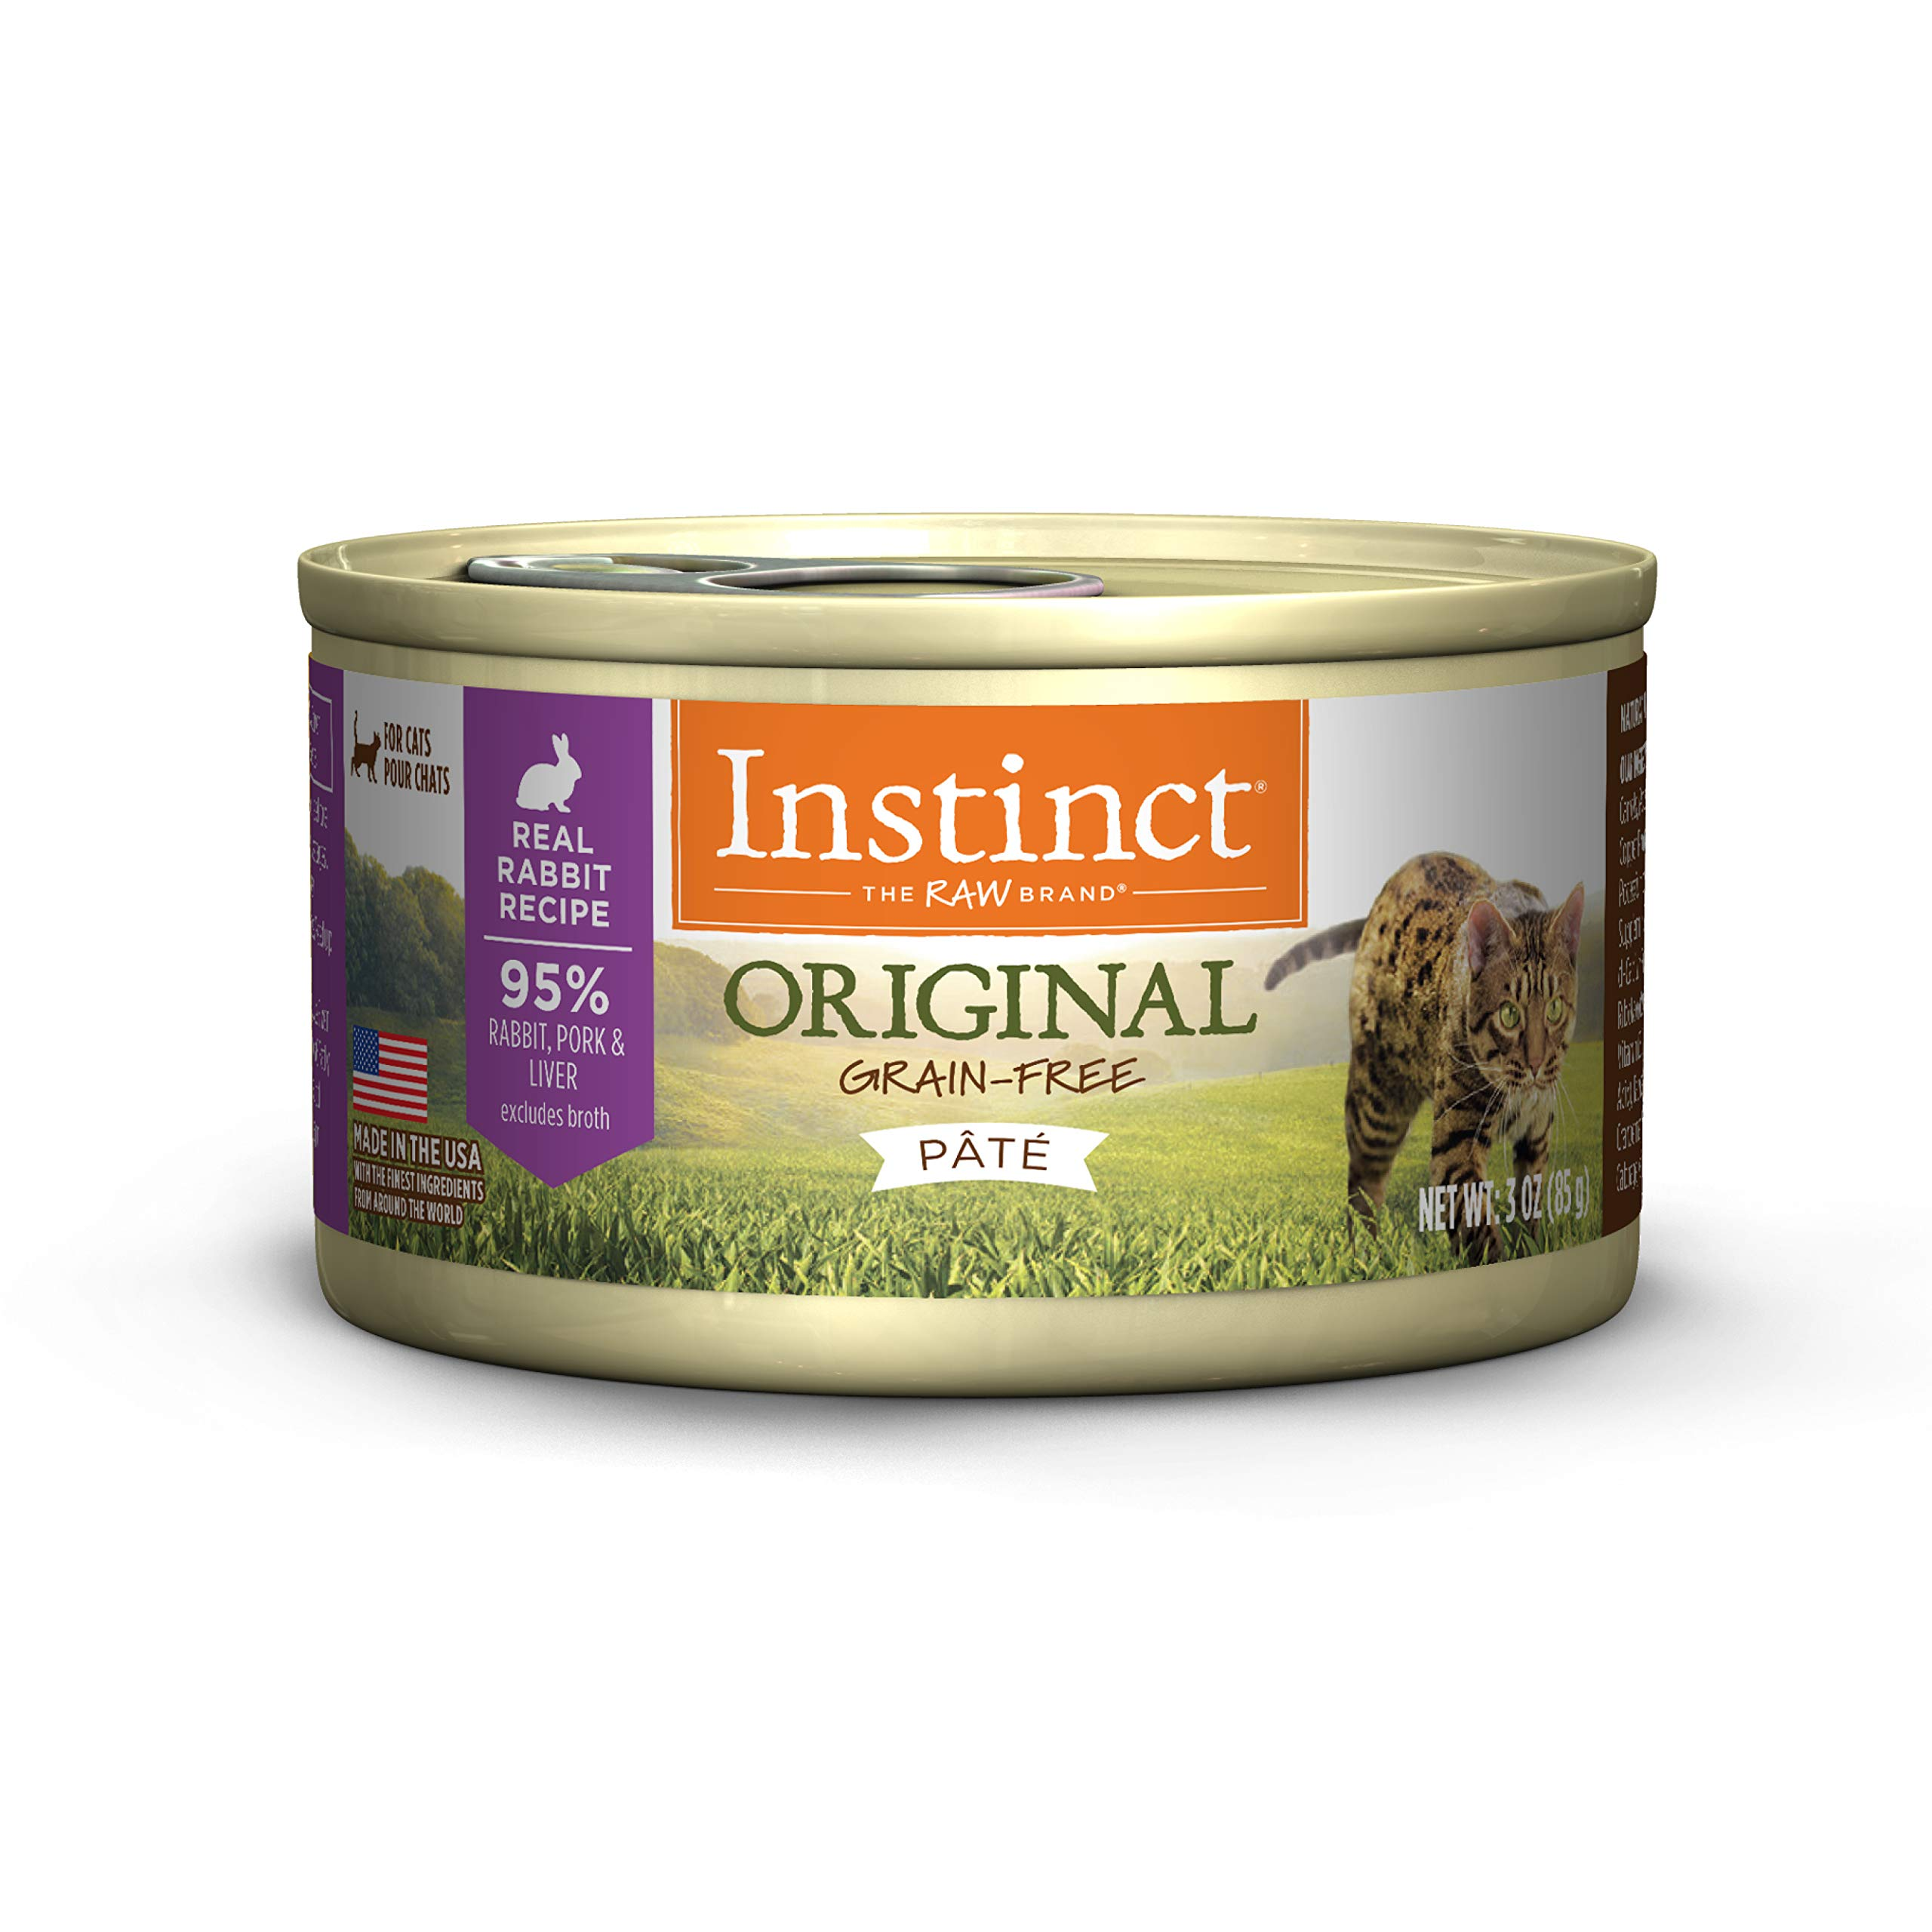 Instinct Original Grain Free Real Rabbit Recipe Natural Wet Canned Cat Food by Nature's Variety, 3 oz. Cans (Case of 24) by Instinct